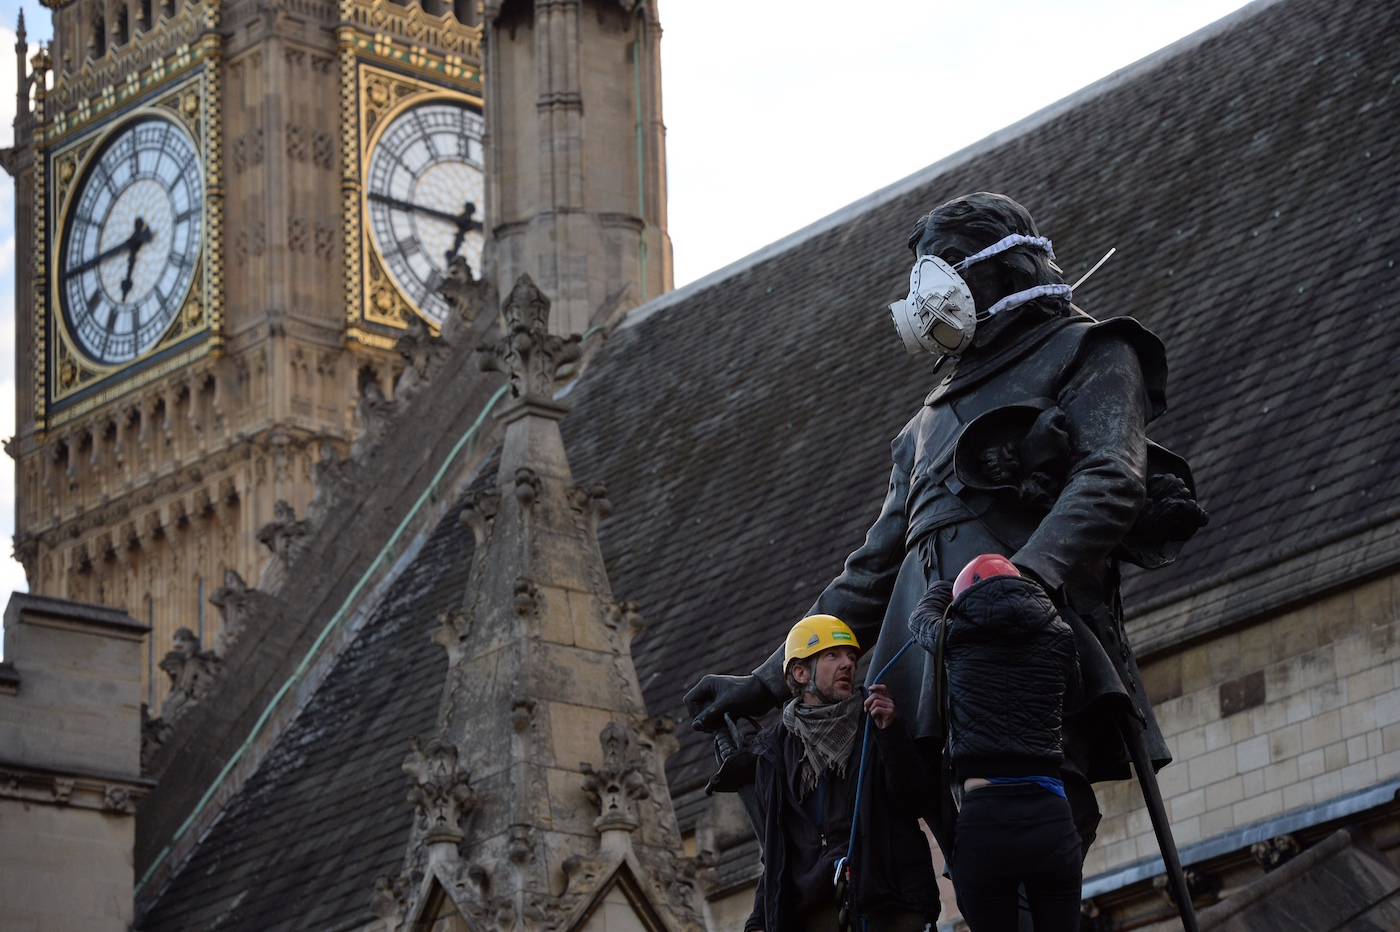 Greenpeace activists fit the Oliver Cromwell's statue with an emergency face mask to demand action on air pollution (photo © Chris Ratcliffe / Greenpeace)